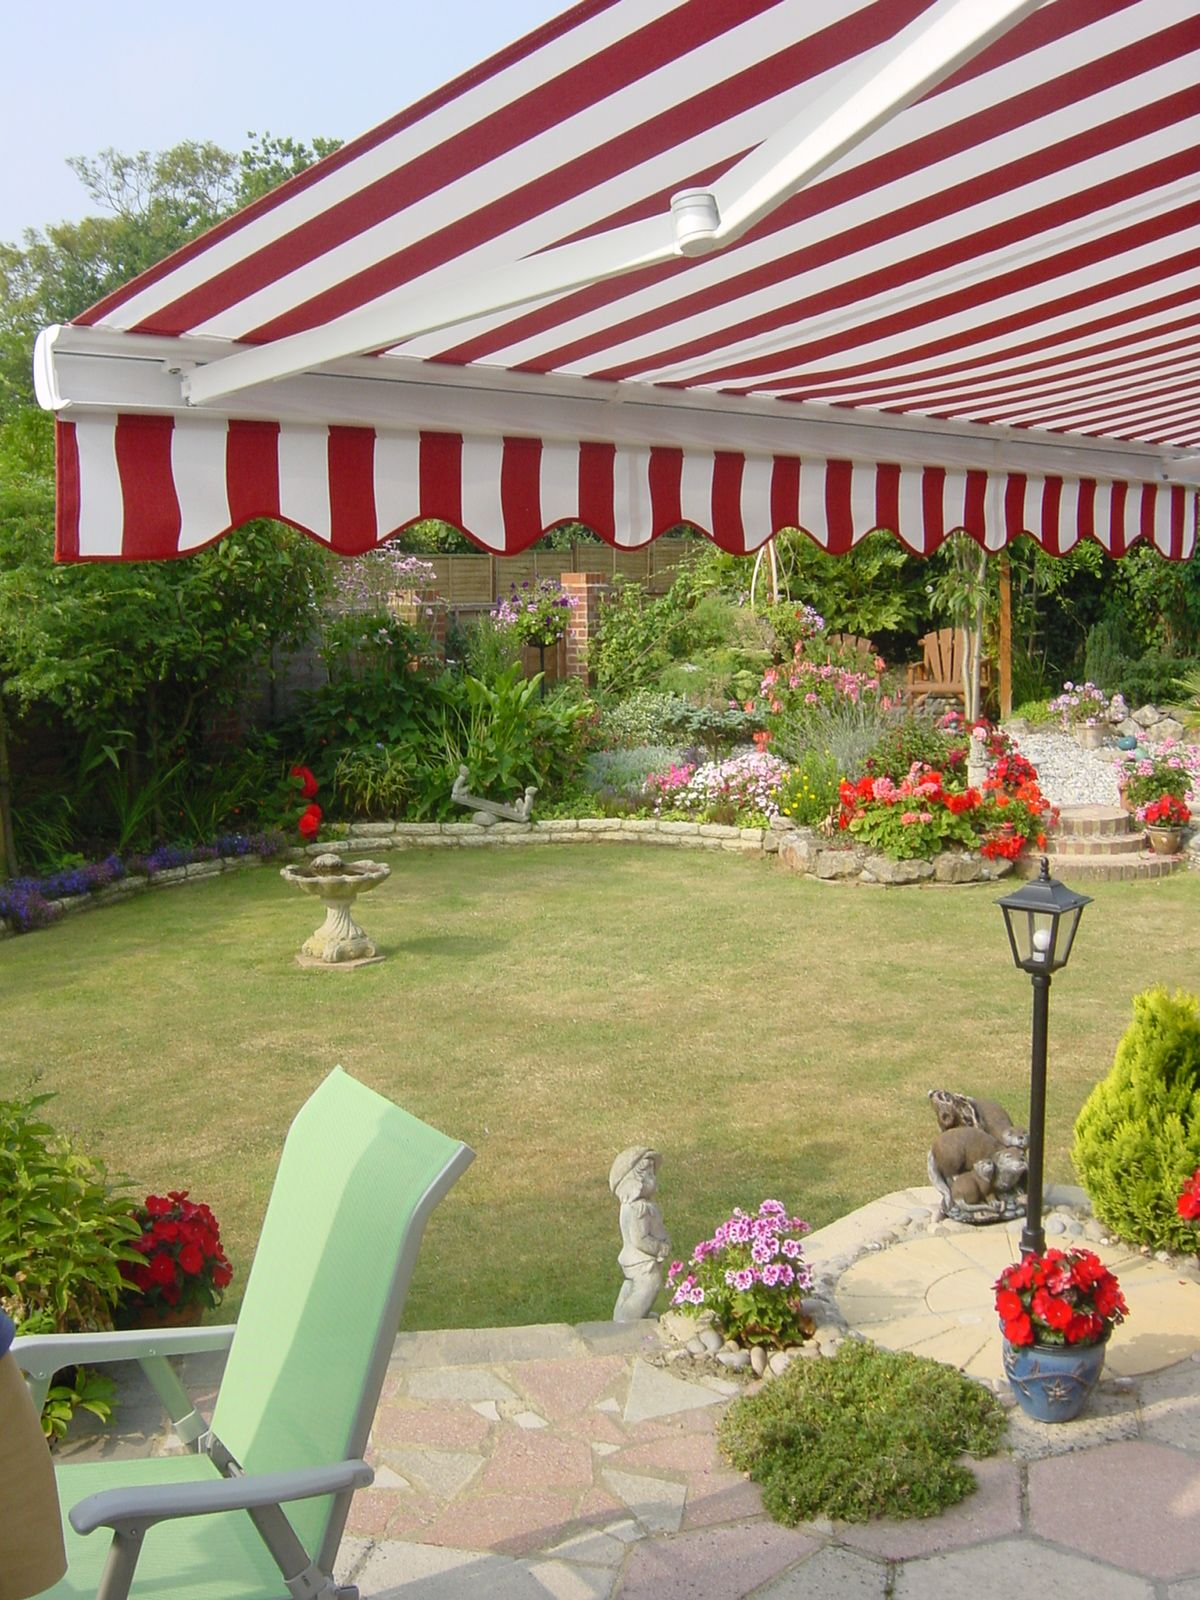 Made to Measure Awnings Bolton | Aspiration Blinds | Budget Blinds & Made to Measure Awnings Bolton | Aspiration Blinds | Budget Blinds ...